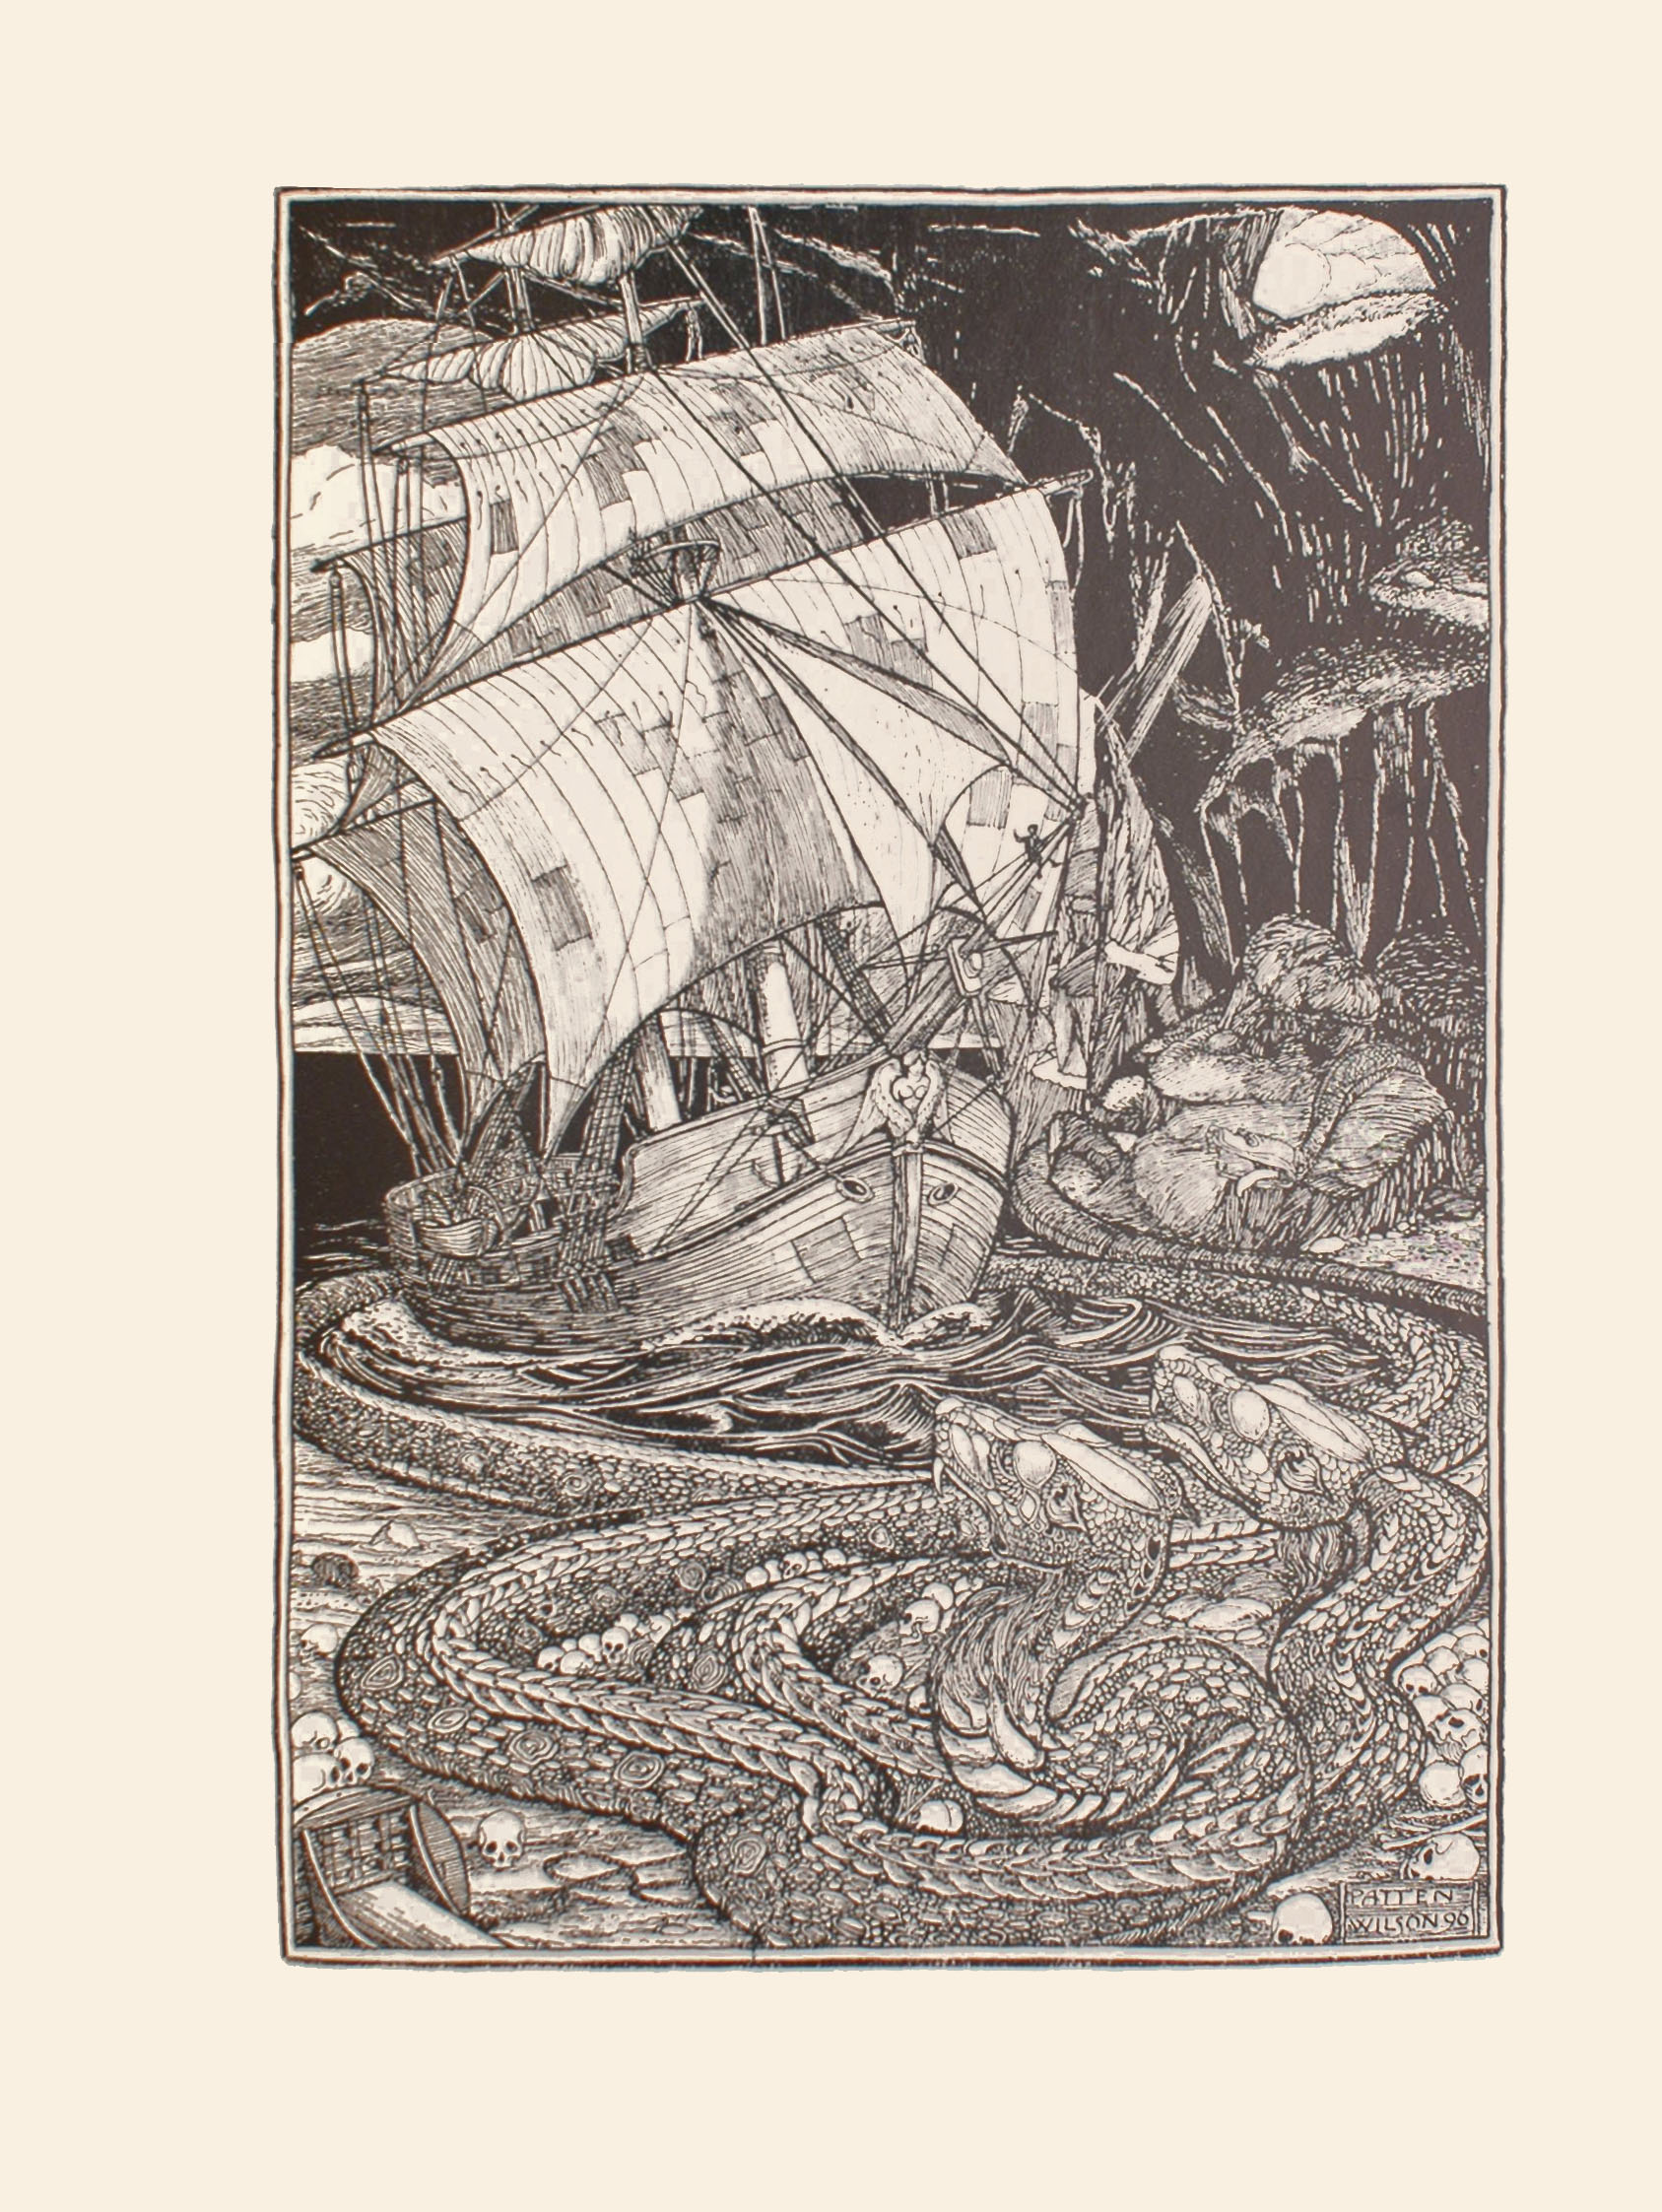 The image is of a tall wooden ship sailing in human skull infested dark waters surrounded by three snake like creatures or serpents The ship is in a dark cave with stalactites hanging from the ceiling. In the upper right corner of the image there is a small opening that depicts a light sky clouds and sunshine streaming into the cave There is also a large opening behind the ship where the sky and clouds are also seen The ship s sails are light coloured and patched with dark coloured rectangular pieces of cloth There is a dark human figure sitting high up on the ship s bowsprit The figure s right hand is raised There is a lighter human figure shown from the chest up on the upper deck of the ship His right arm is pointed towards the starboard side of the ship and he is wearing light coloured clothing and a cap on his head The ship s anchor is raised and the figurehead is of a nude angel with wings The snake like creatures have scaled bodies and are encircling the ship and the water it floats upon Two of the snakes are facing the ship in the lower right hand side of the image They are lying on the skull covered shore mouths slightly open with fangs protruding There is a third snake lying on a raised section of the shore in the mid ground facing the ship with its mouth open tongue hanging out of the left side and fangs protruding The image is displayed vertically